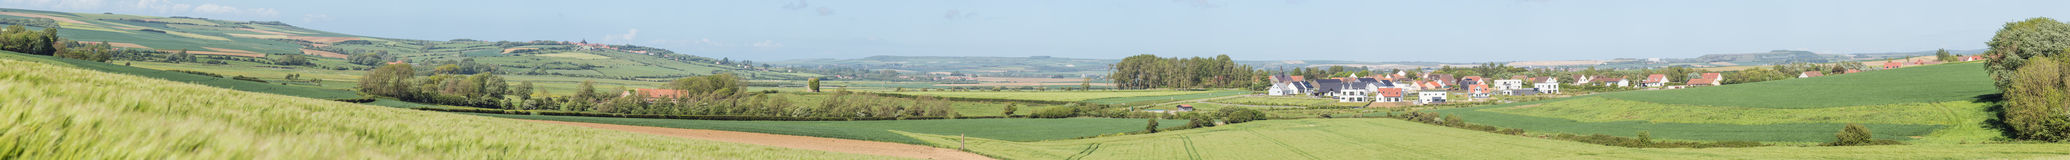 Large panorama of the countryside near Wimereux stock images